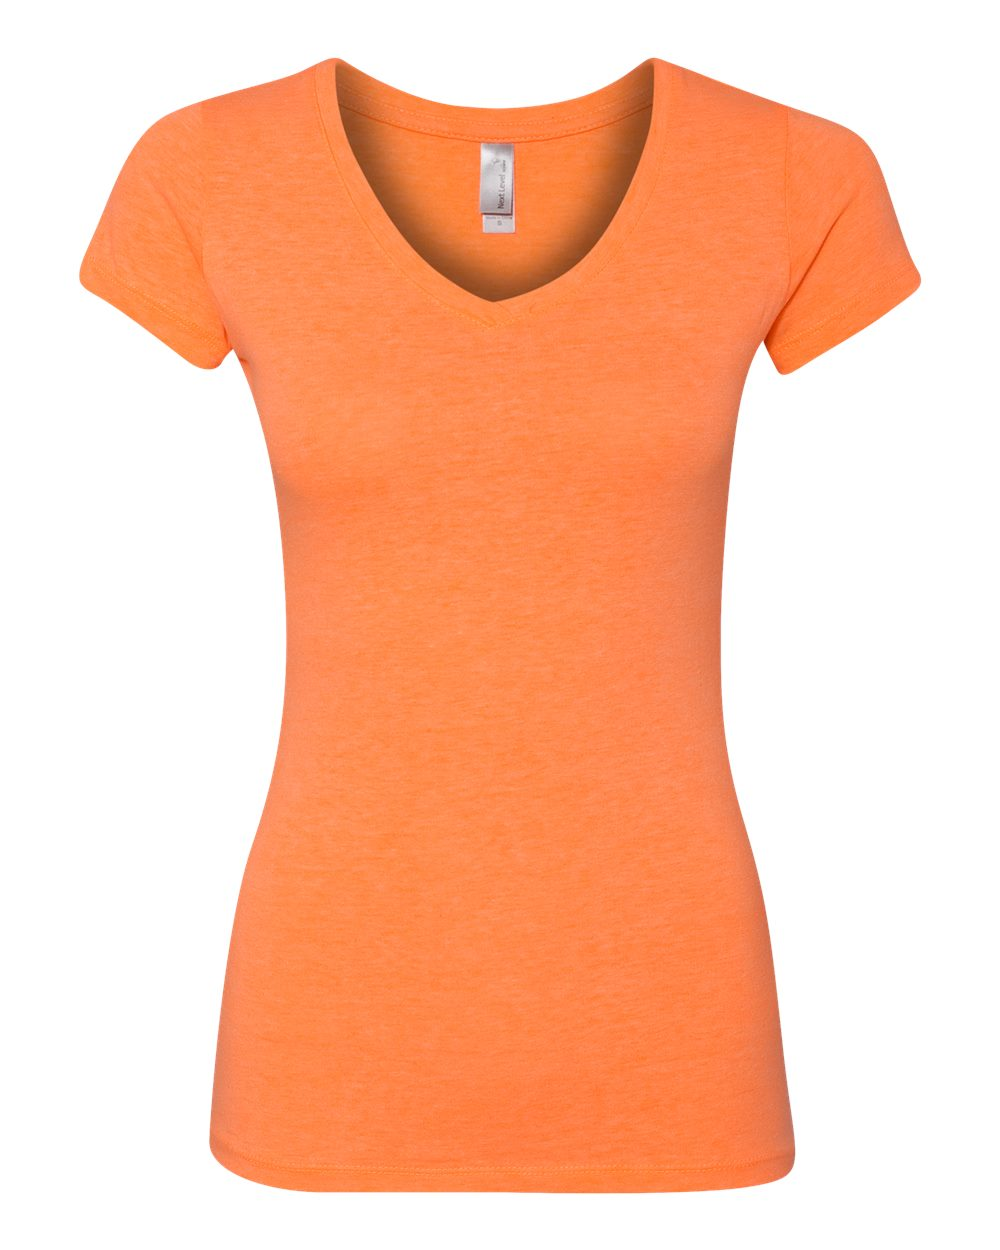 Next_Level_3400L_Neon_Heather_Orange_Front_High.jpg